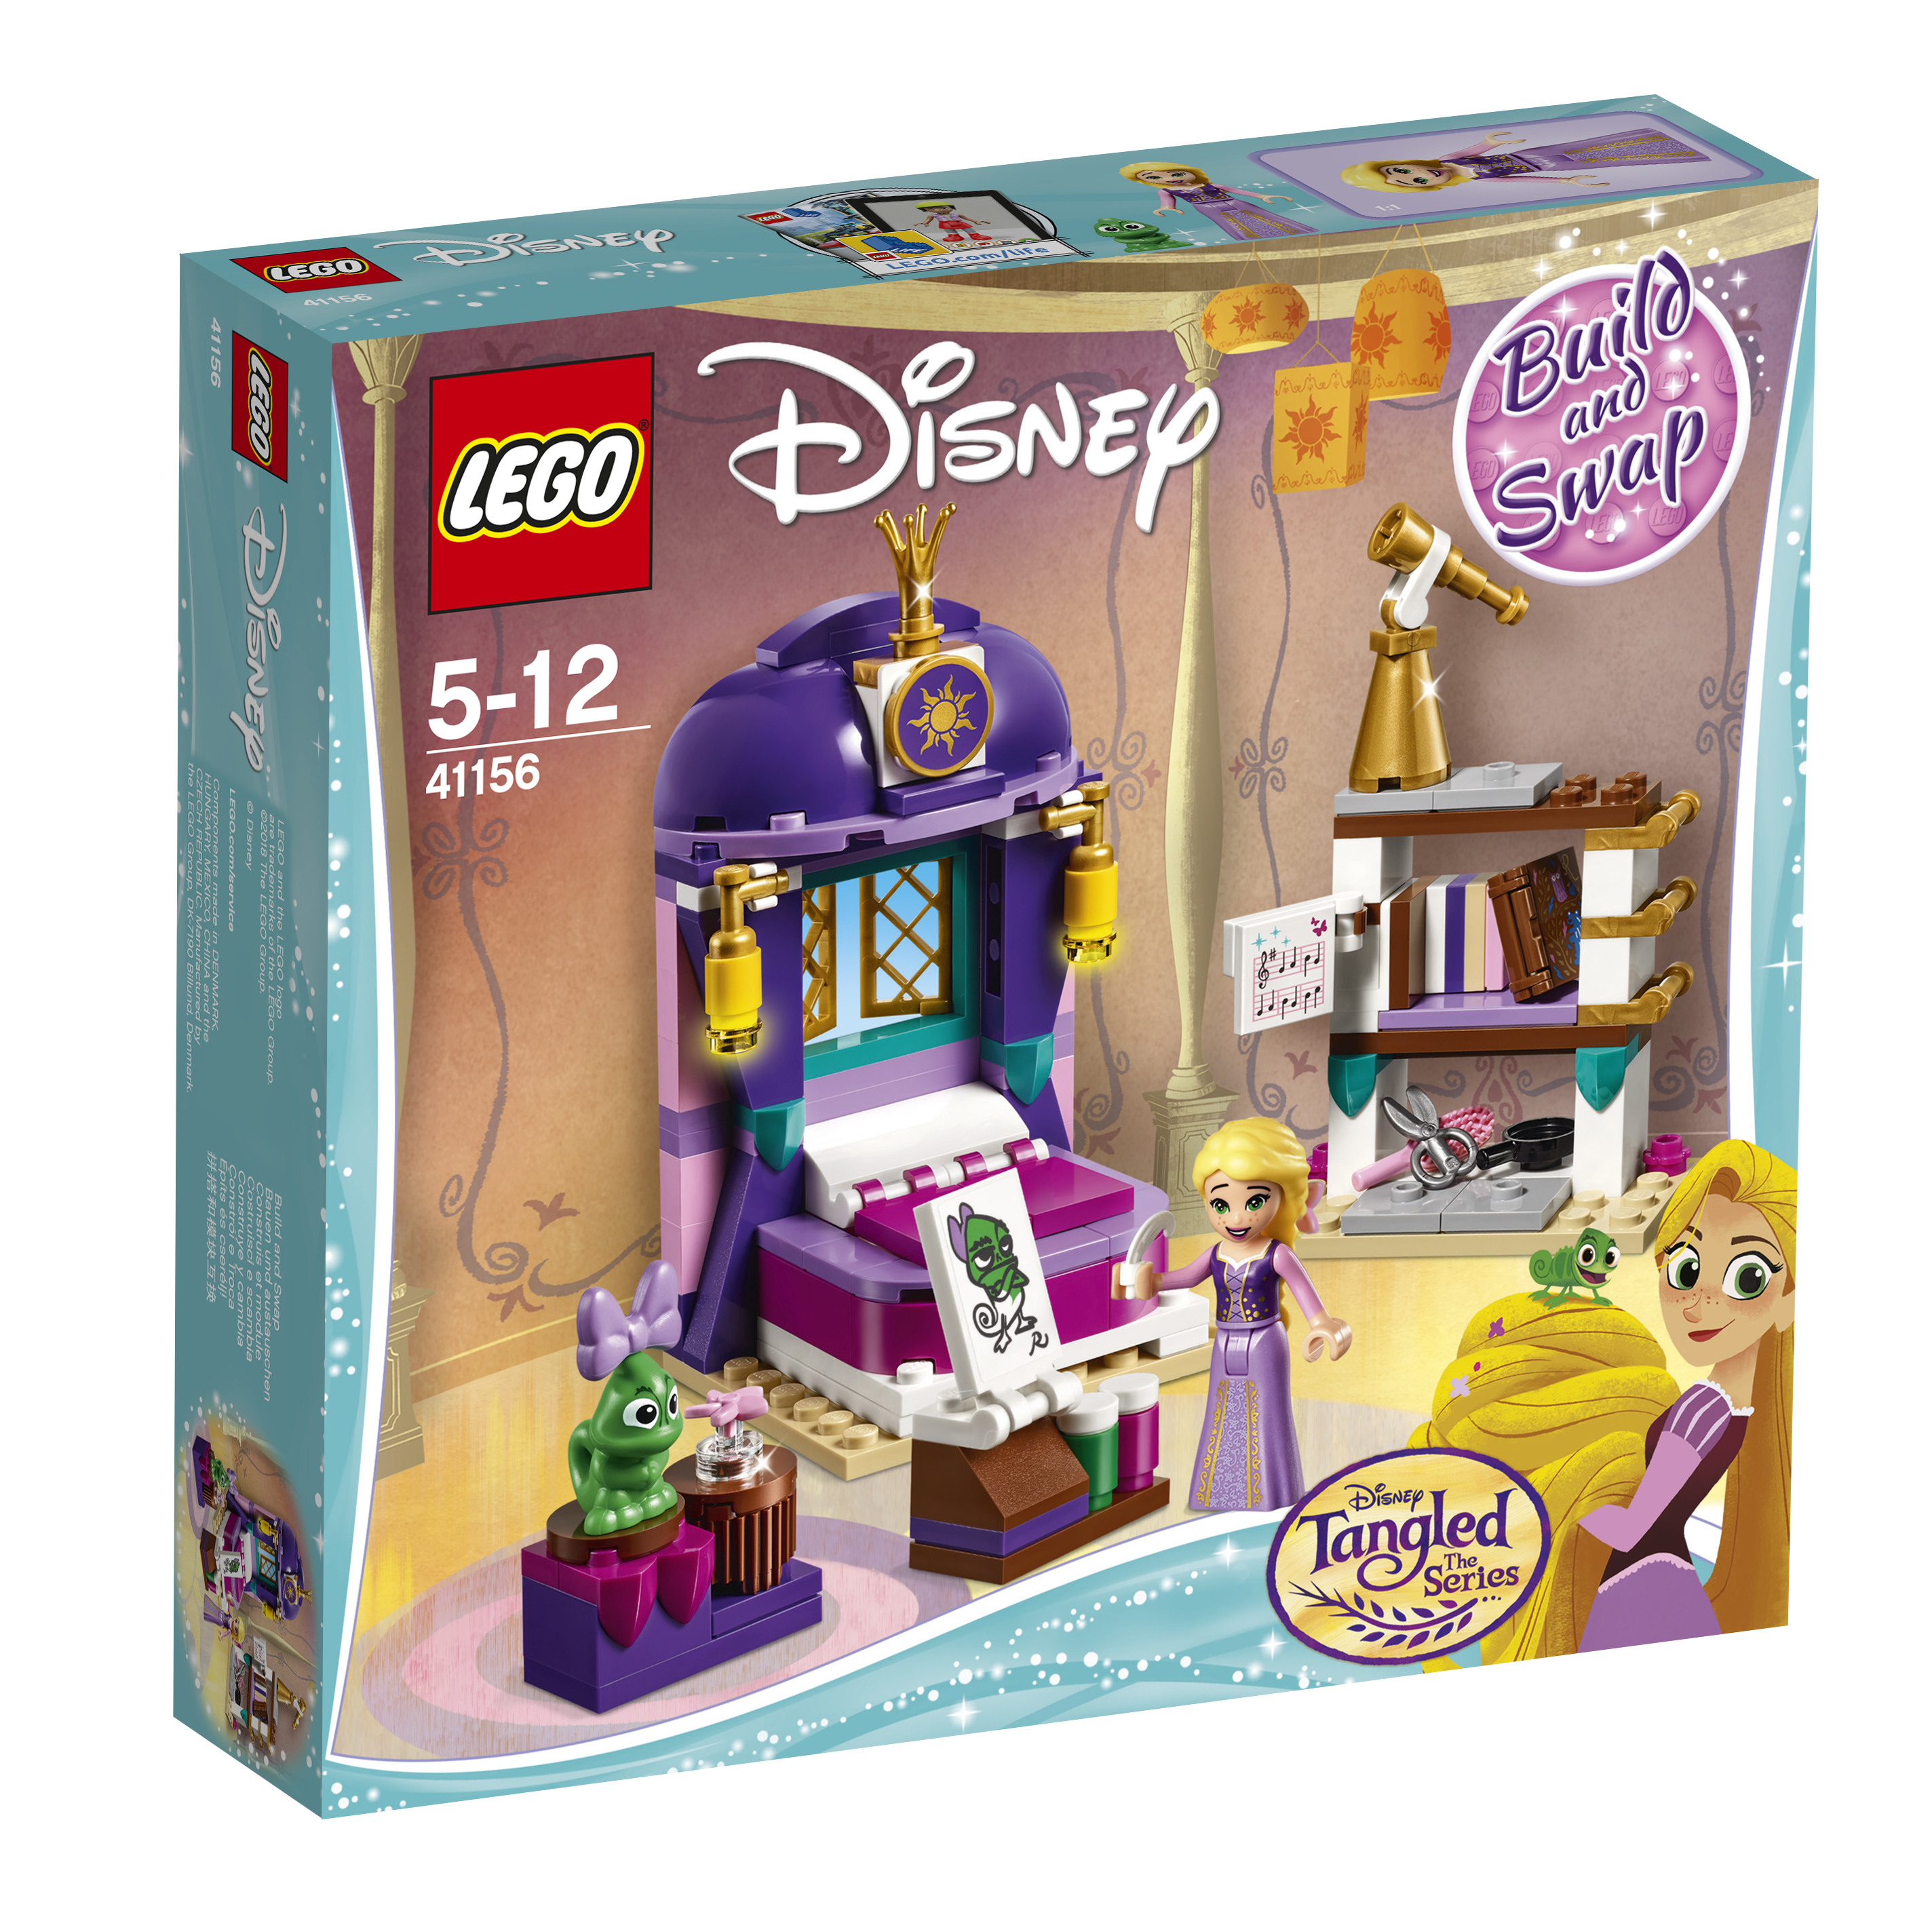 LEGO LEGO Конструктор LEGO Disney Princess 41156 Спальня Рапунцель в замке jady rose vintage black women knee high boots lace up side zip platform high boots thick heel flat martin boot for autumn winter